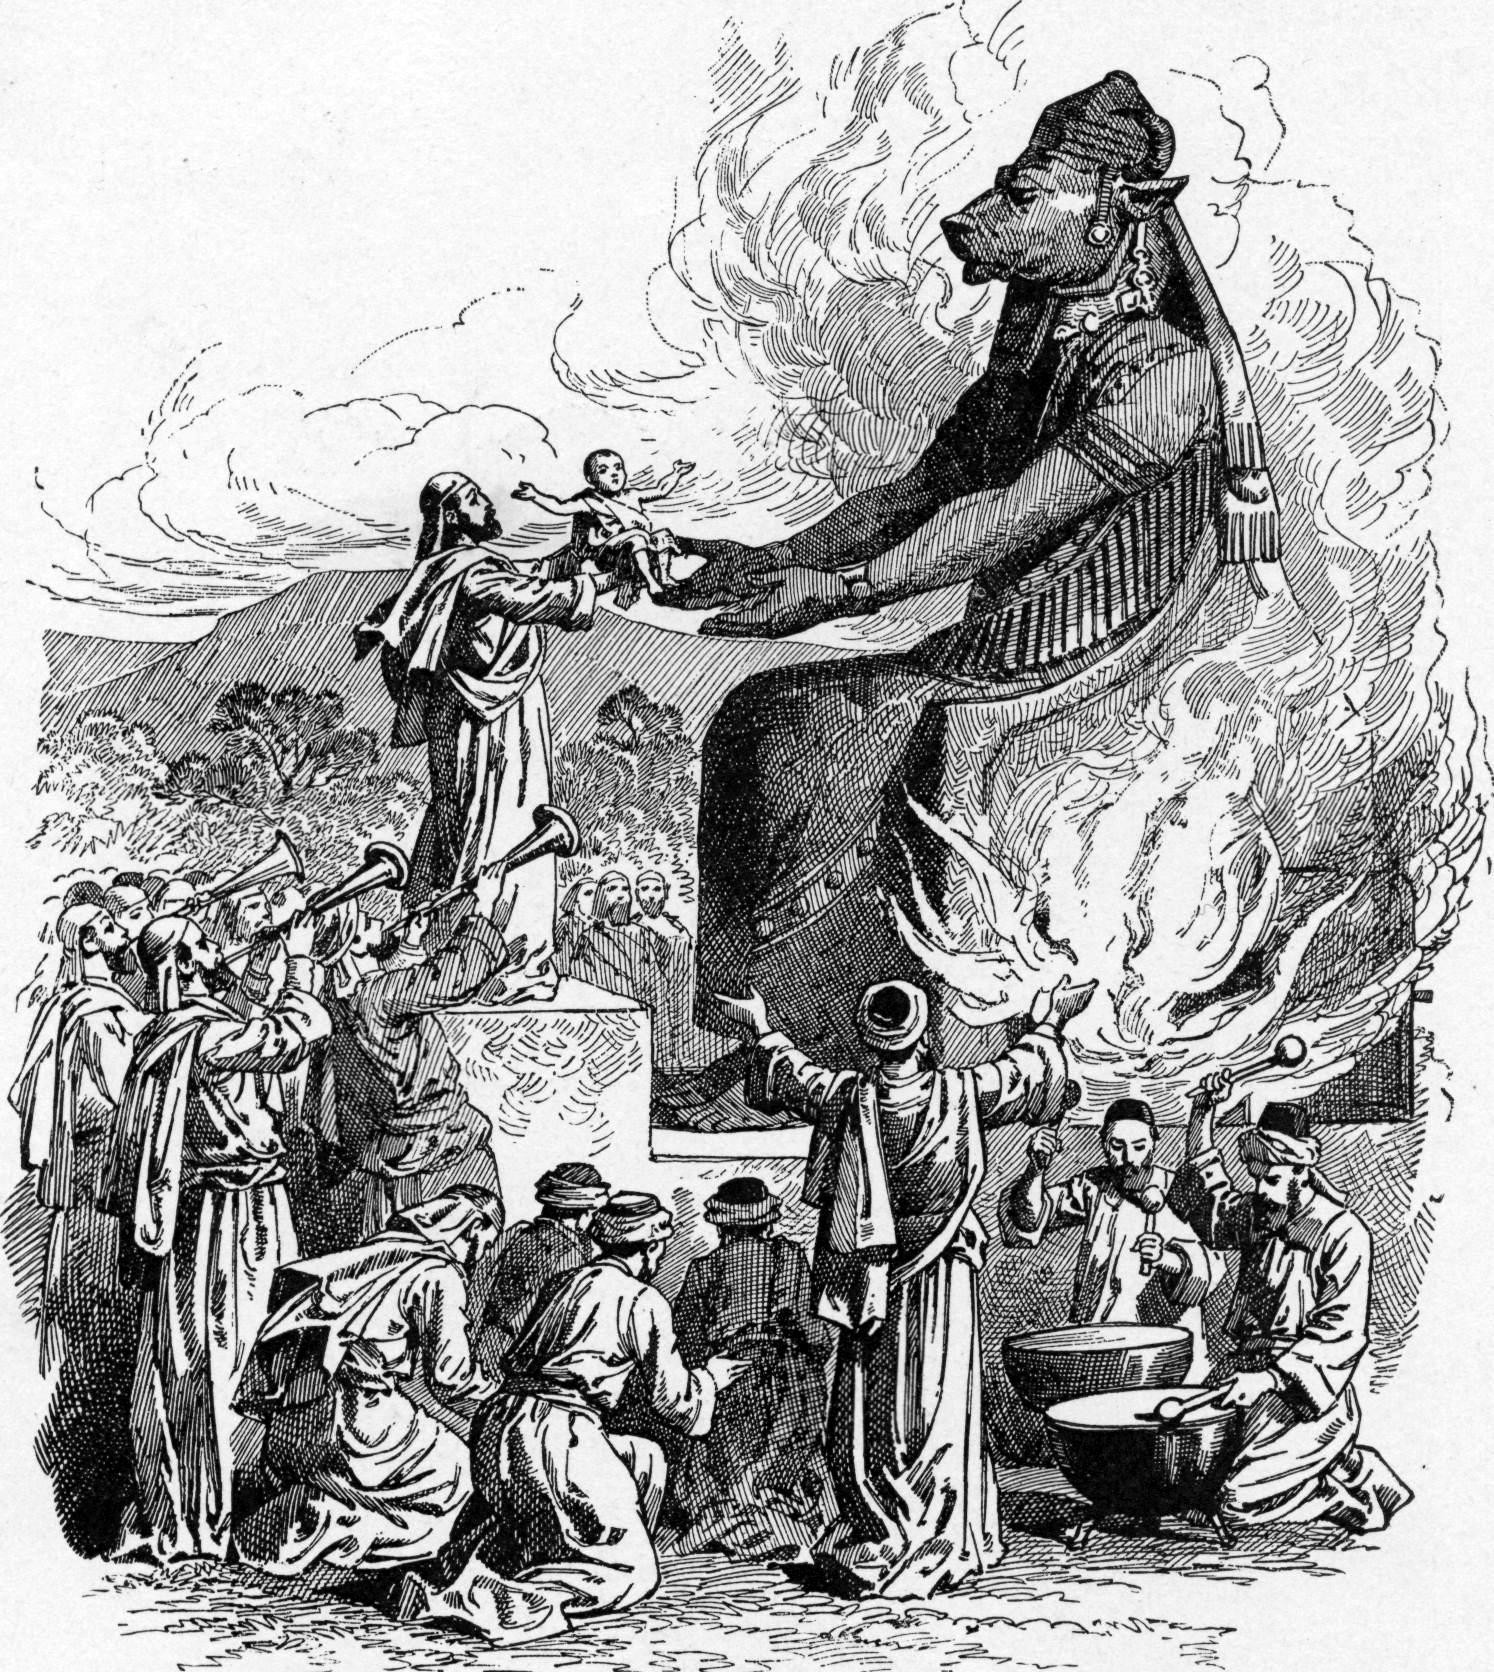 A black and white illustration of people offering a baby as a sacrifice to a bulheaded burning idol.